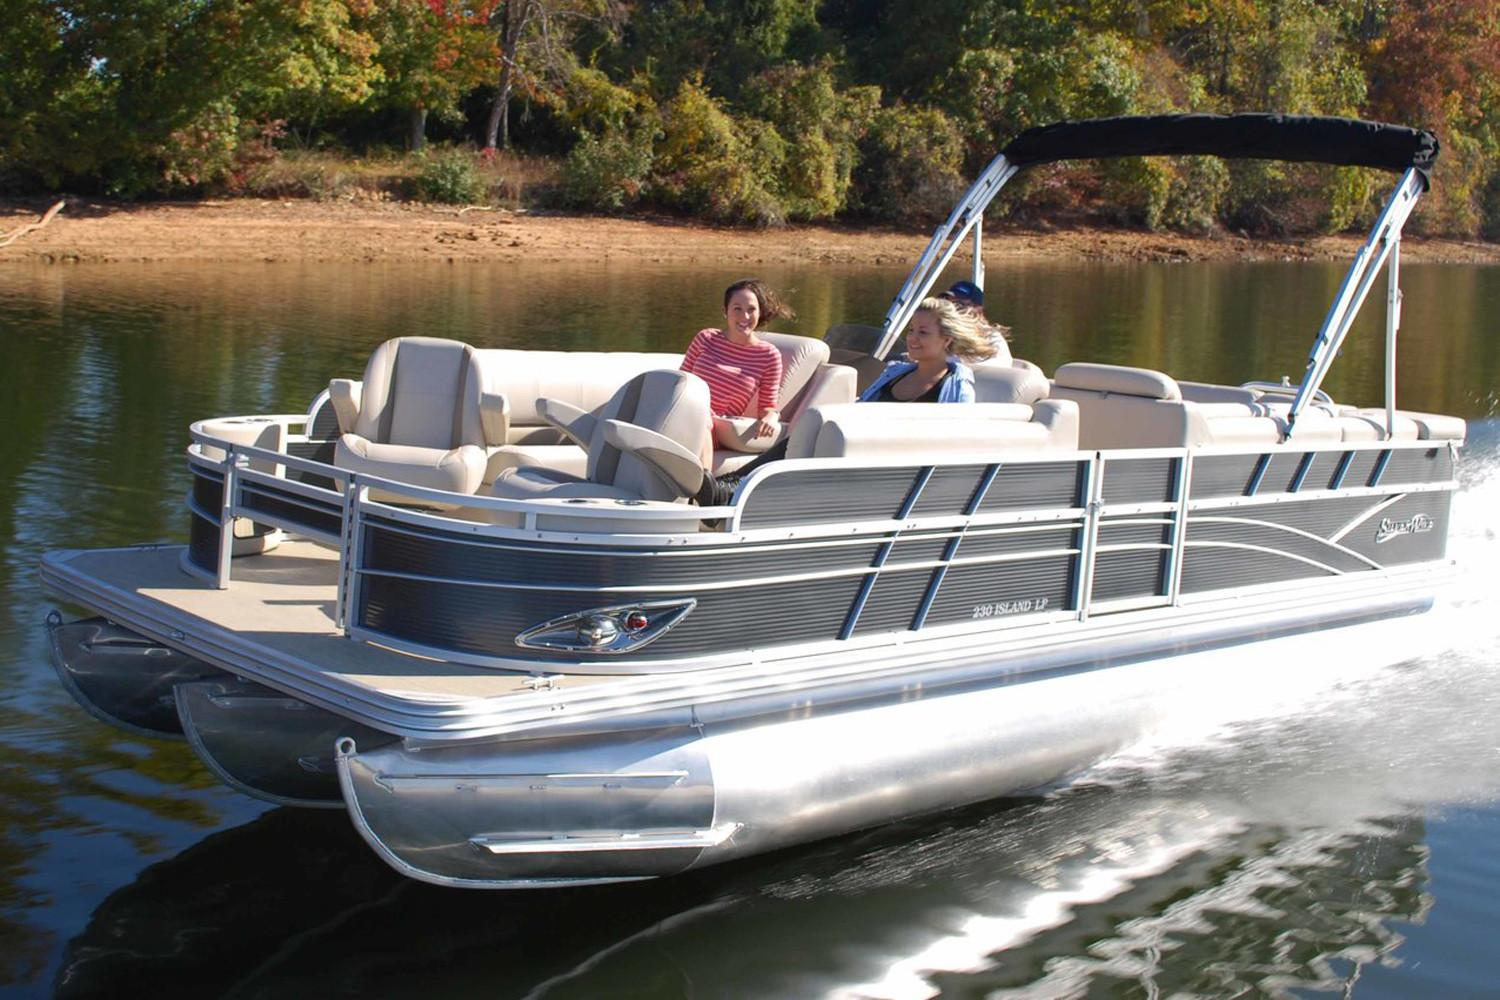 New 2018 Silver Wave 230 Island Lp Power Boats Outboard In